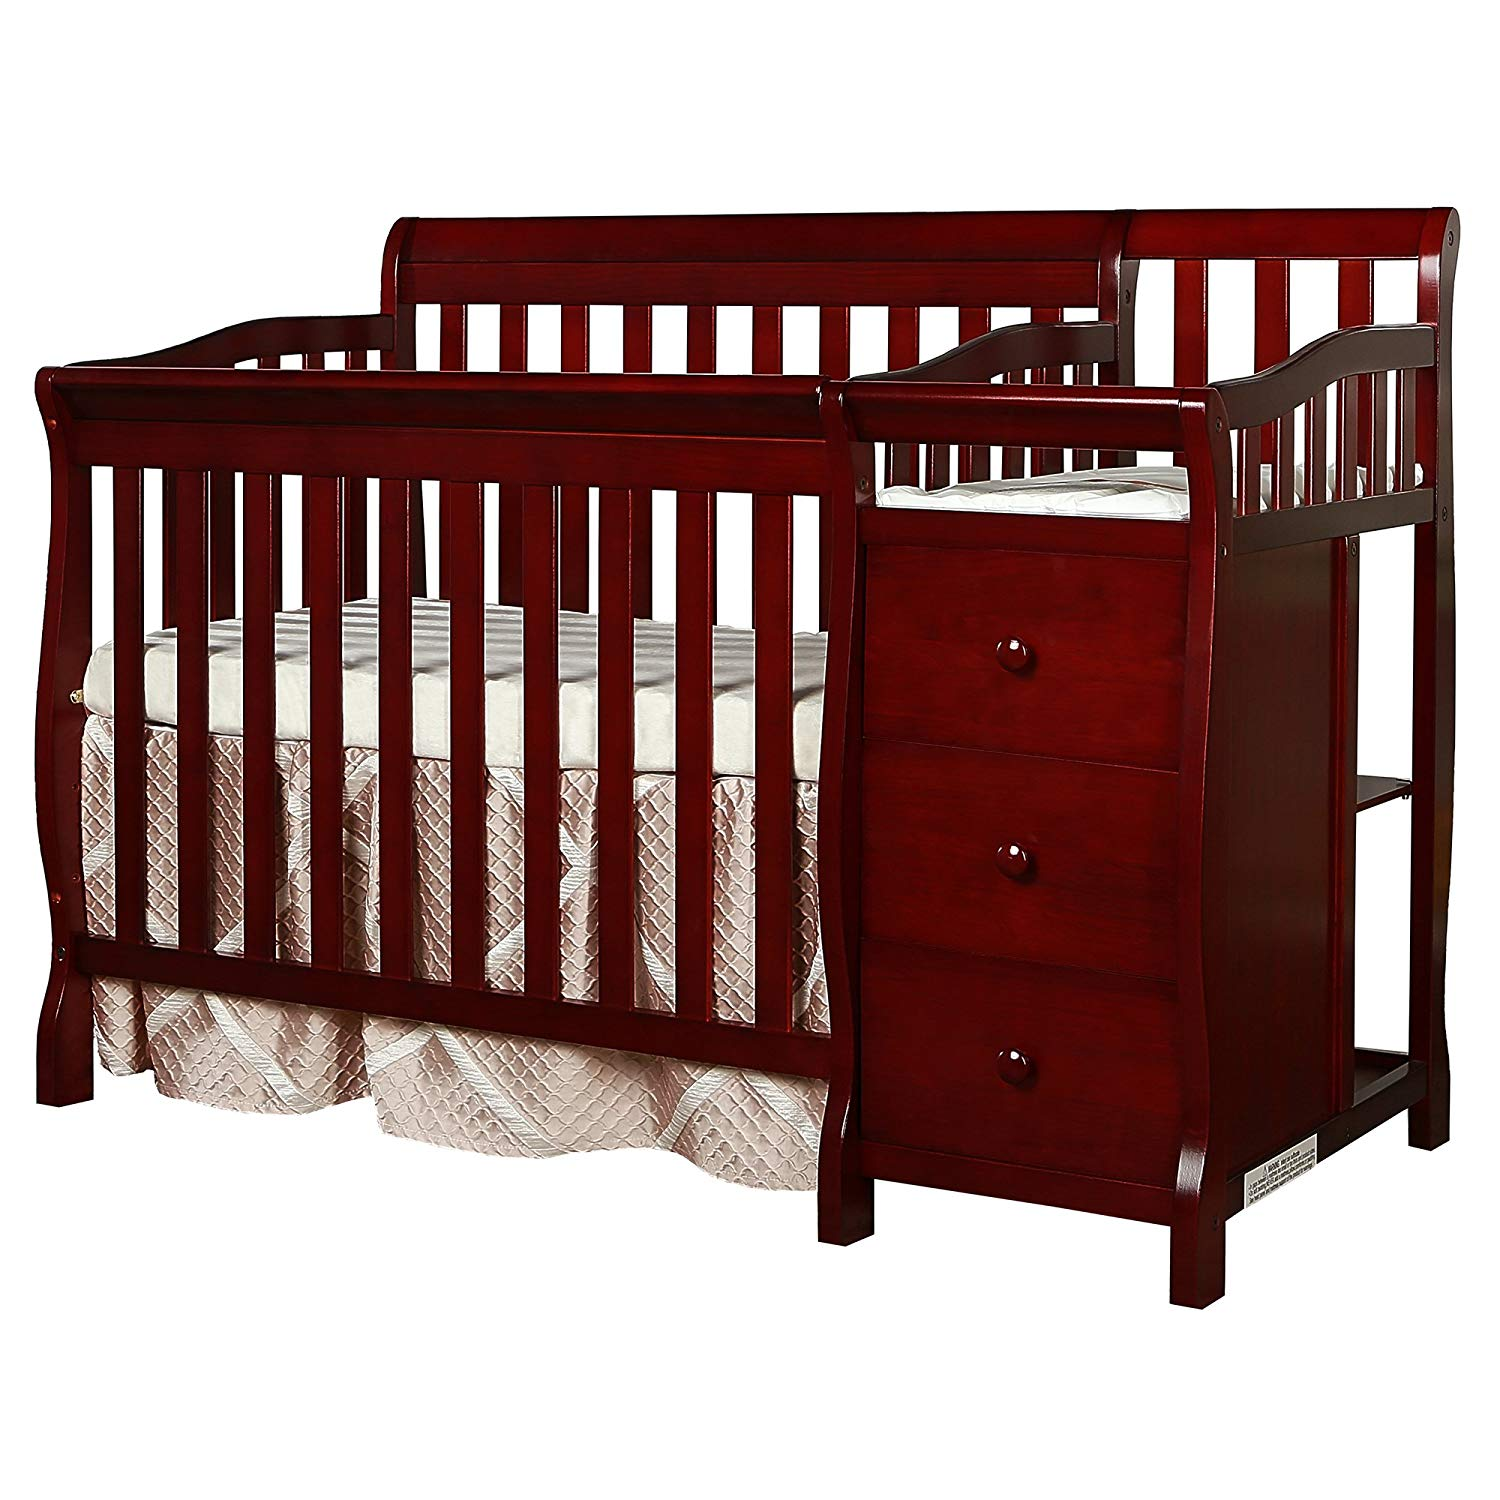 Dream On Me Mini Convertible Crib and Changer, Best Cribs for Twins